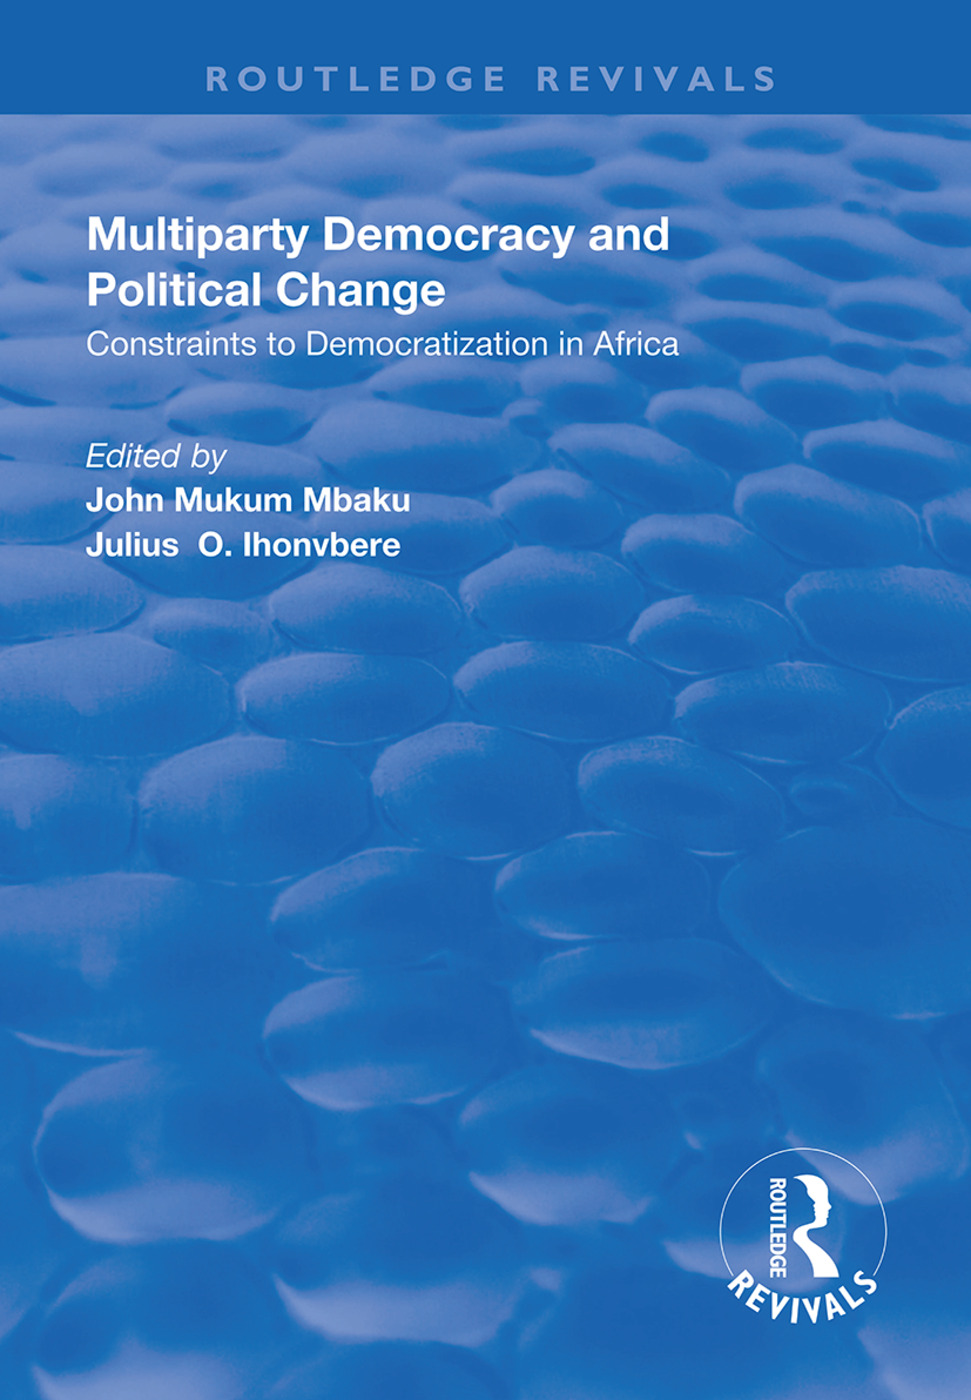 Multiparty Democracy and Political Change: Constraints to Democratization in Africa book cover